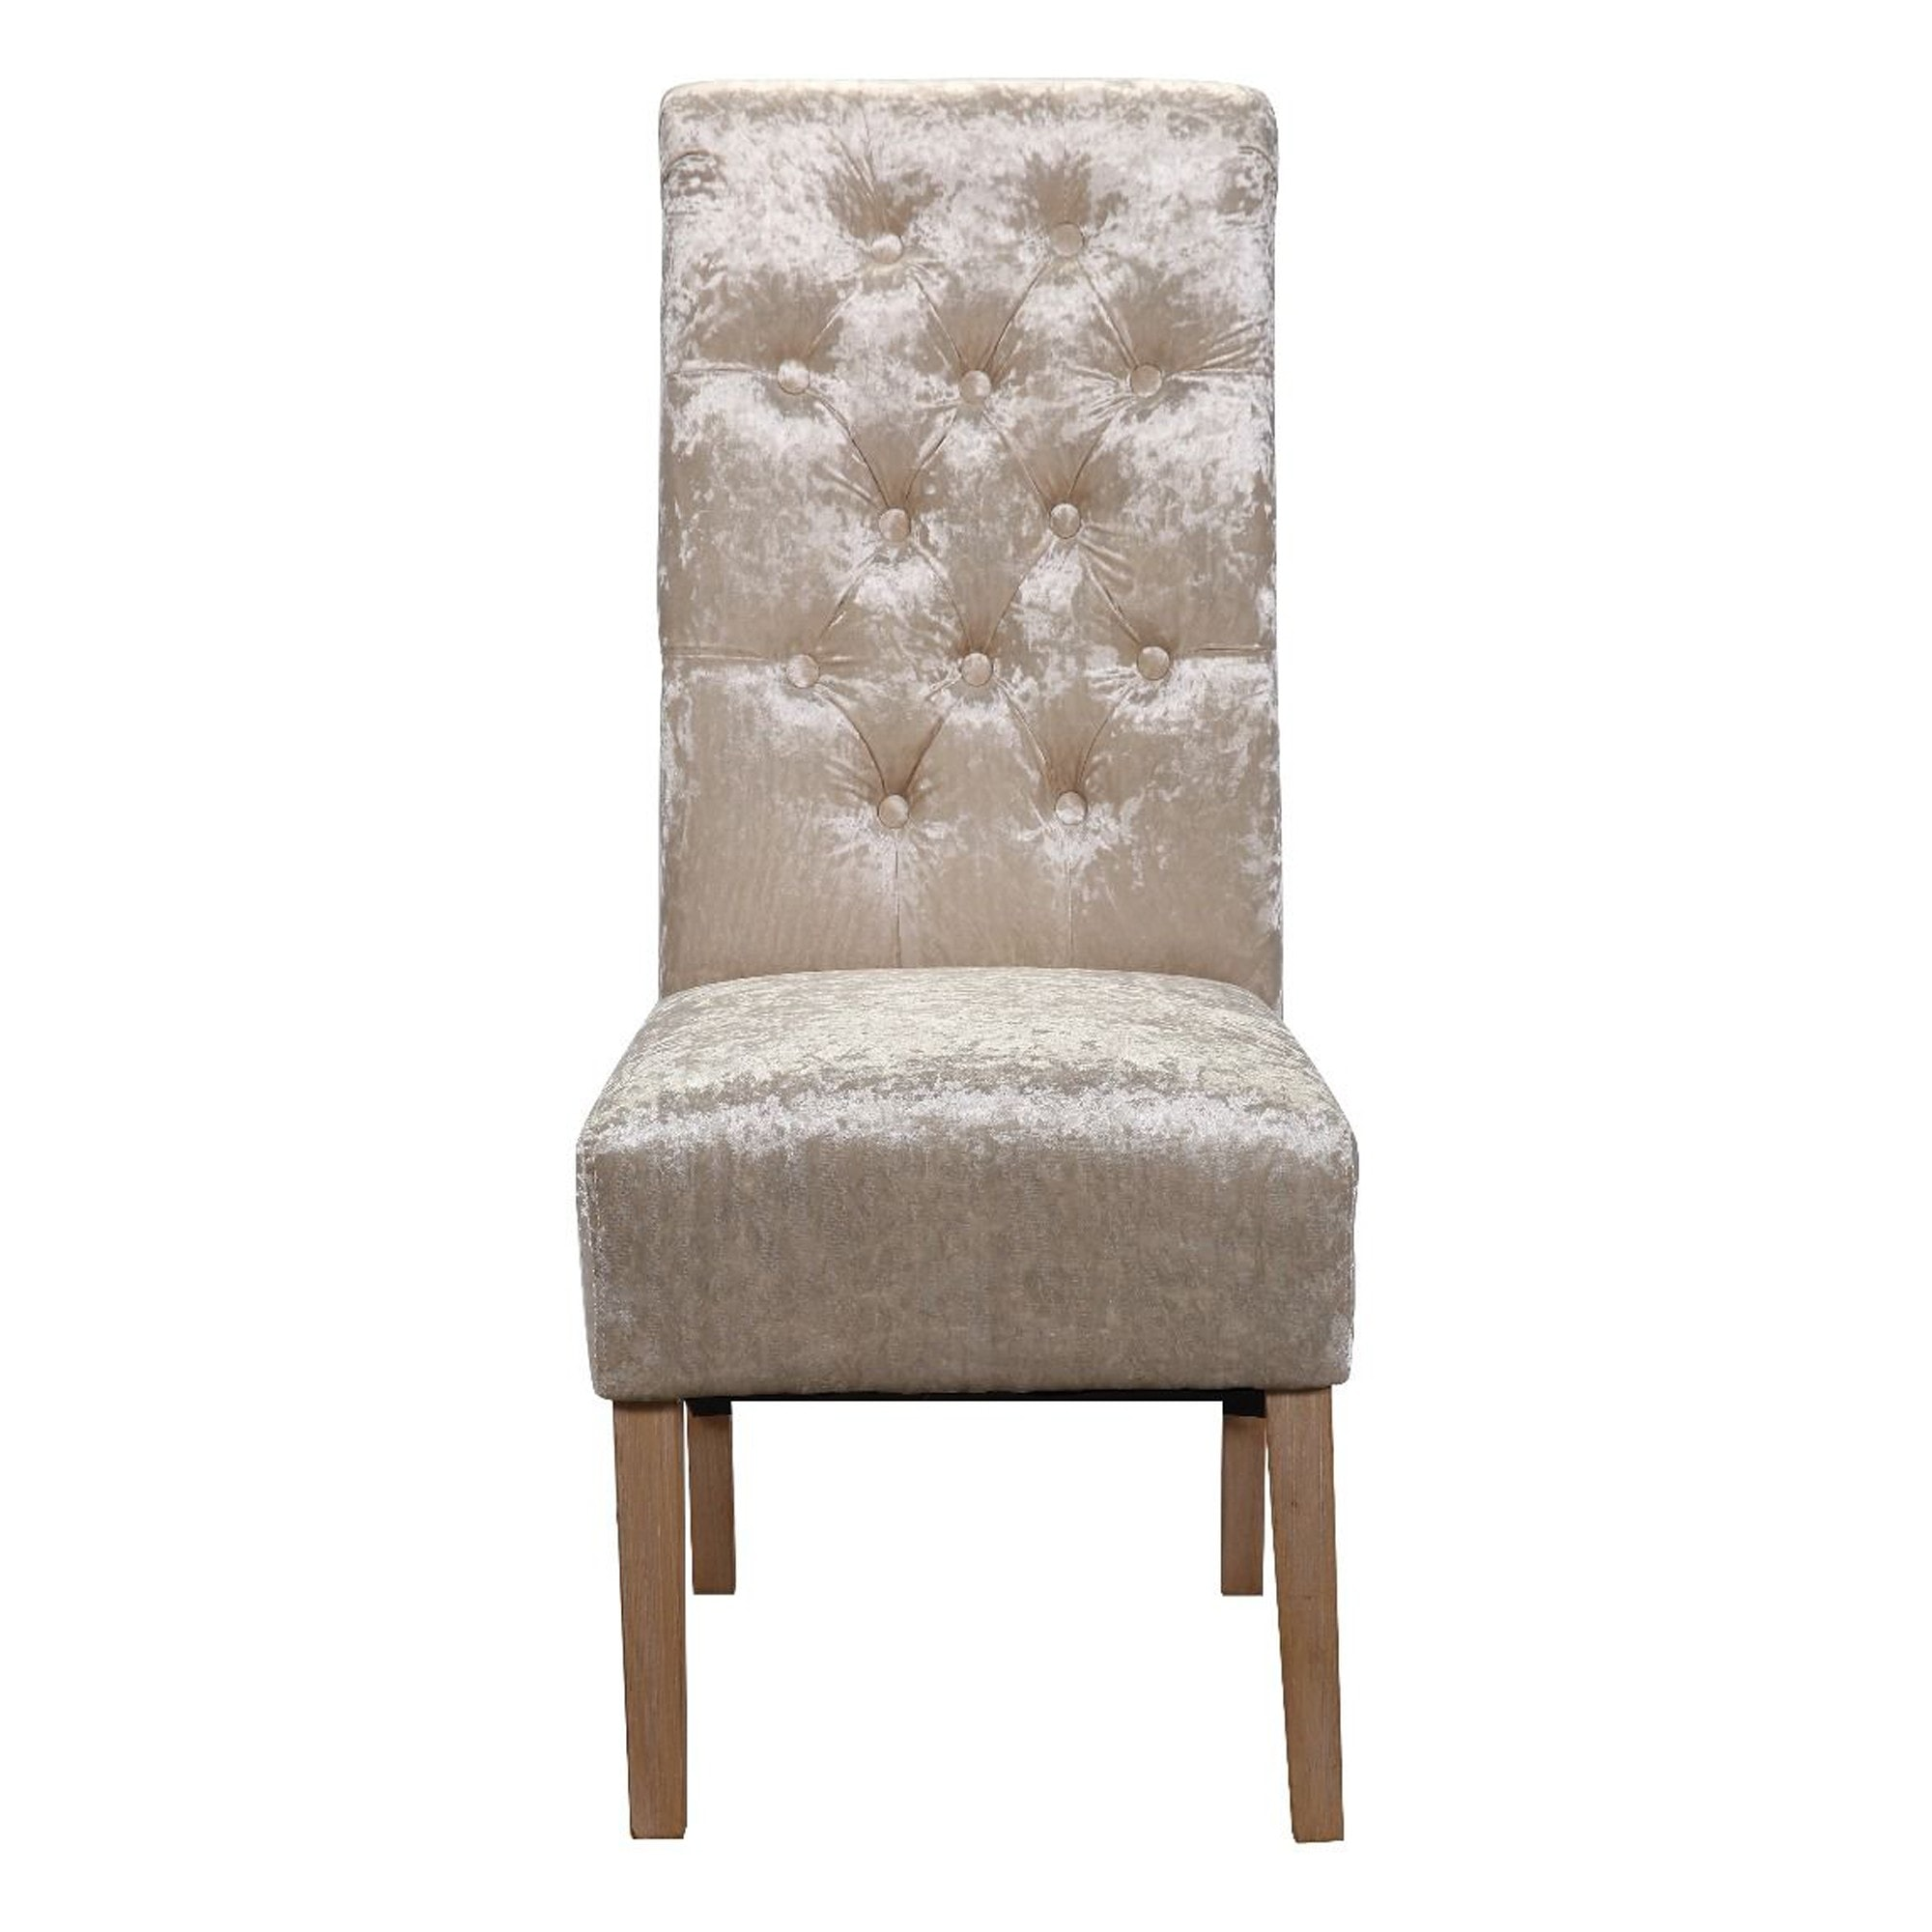 Champagne Crushed Velvet Dining Chair Set Of 2 Champagne Dining Chair Dining Chair